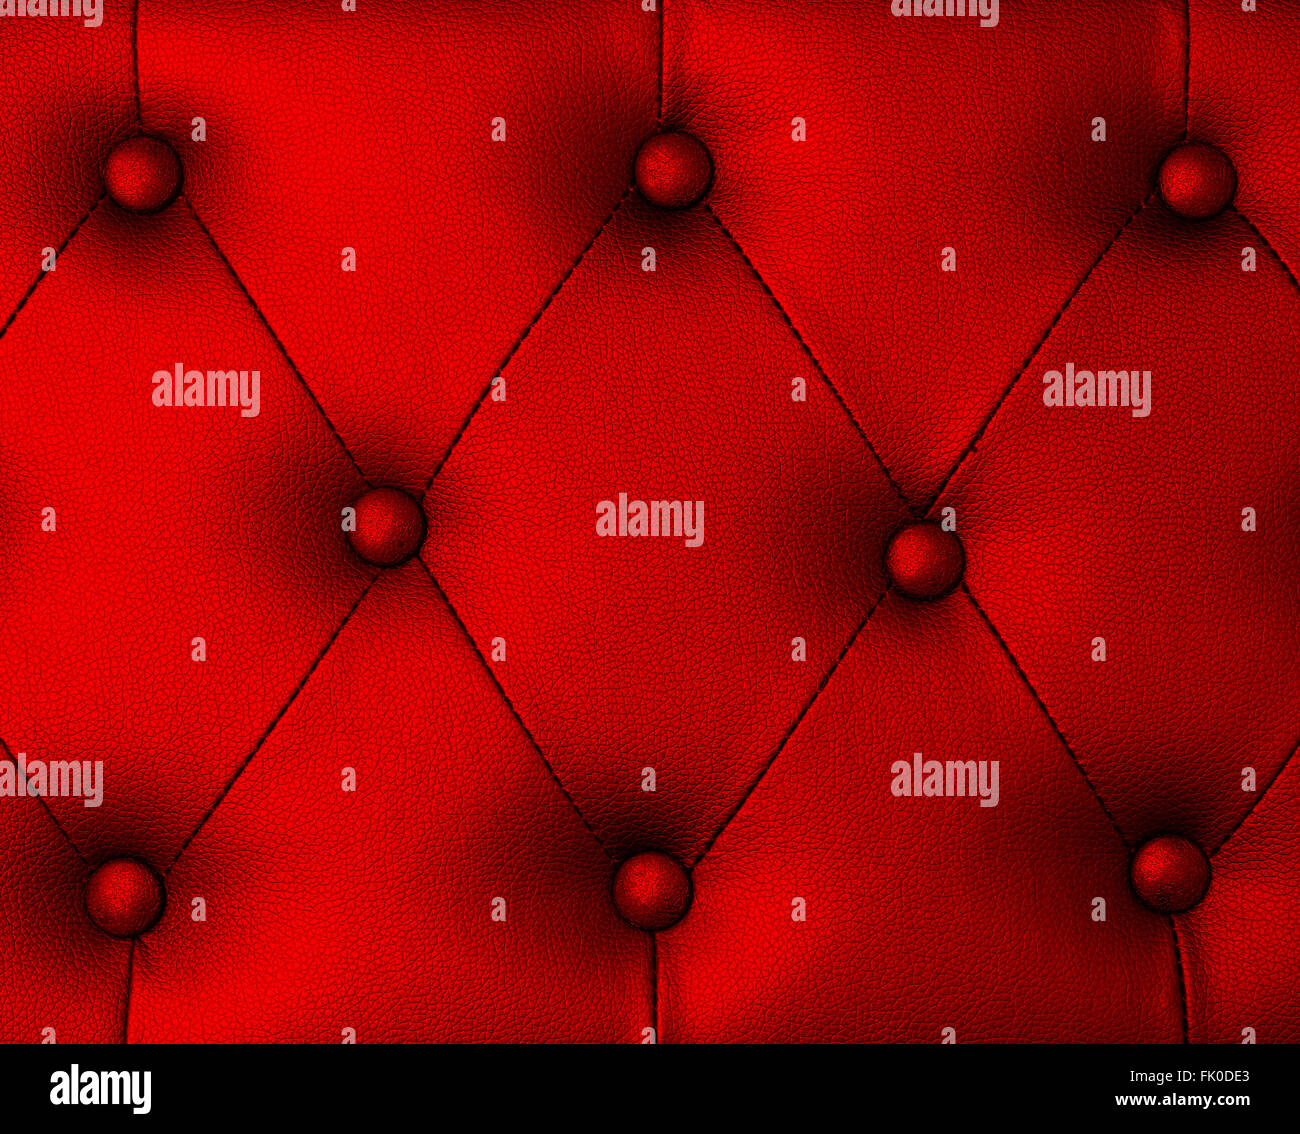 Red upholstery leather pattern background - Stock Image